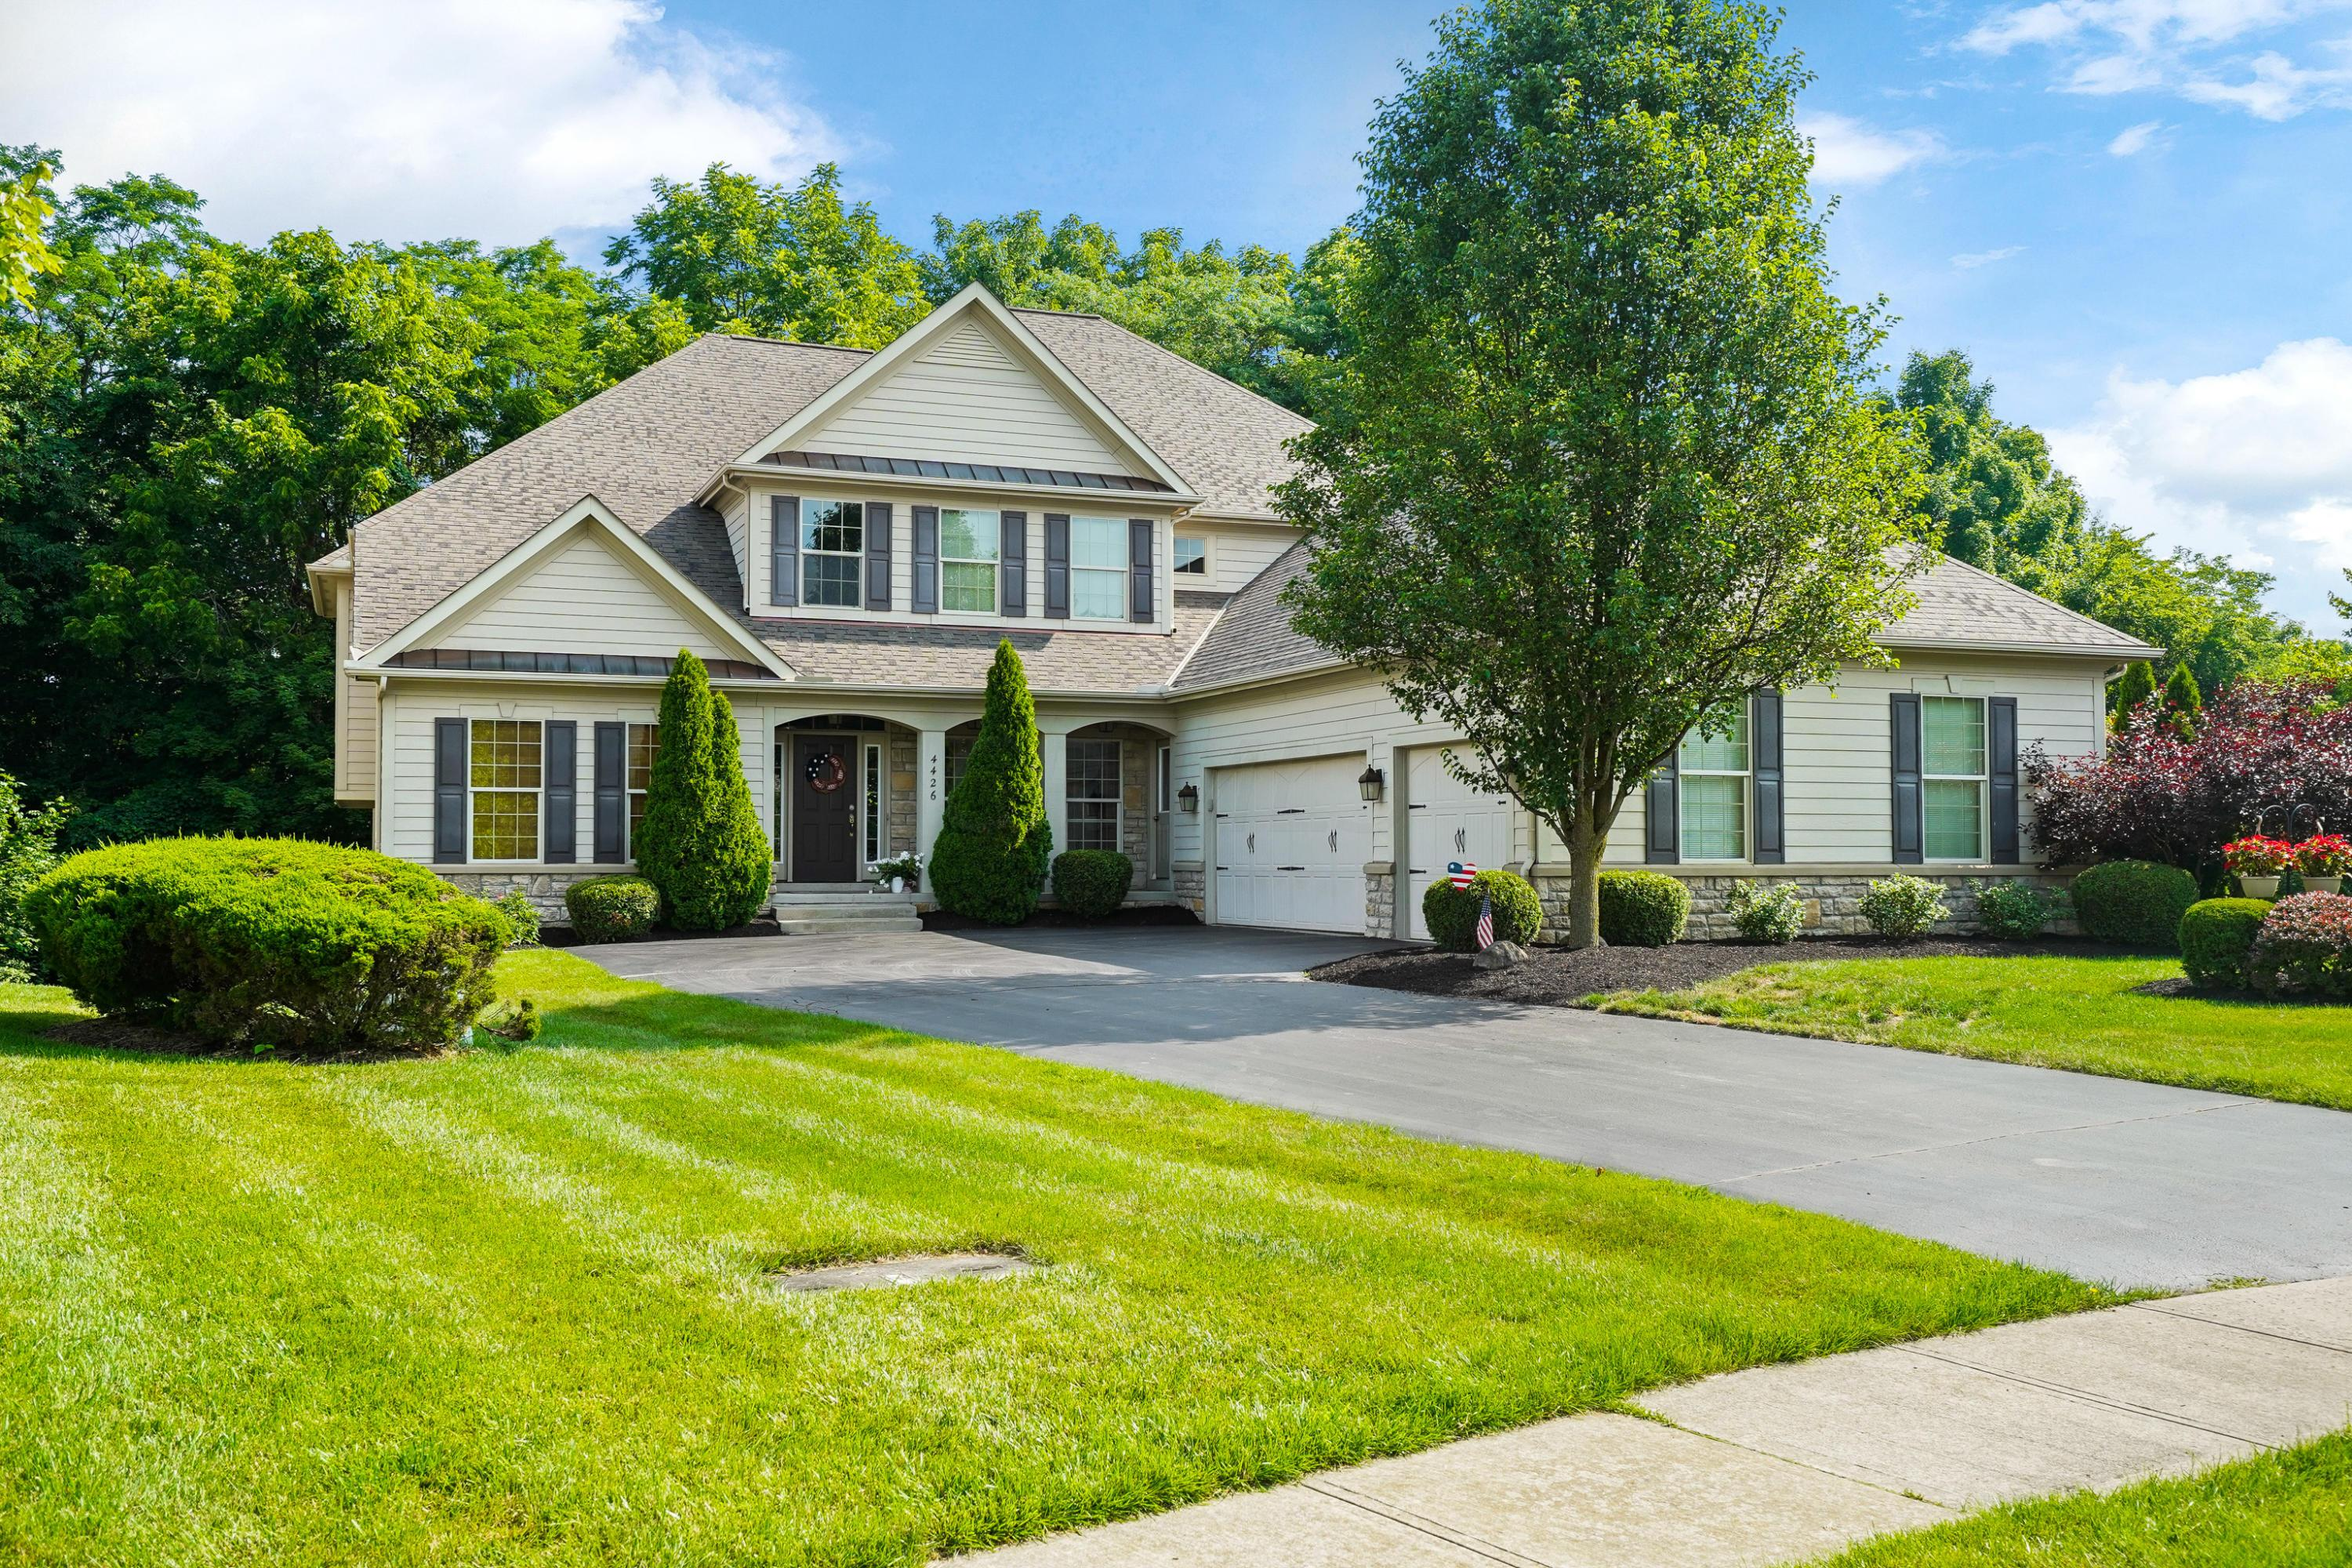 4426 Yellow Wood Drive, Dublin, Ohio 43016, 5 Bedrooms Bedrooms, ,6 BathroomsBathrooms,Residential,For Sale,Yellow Wood,220030841